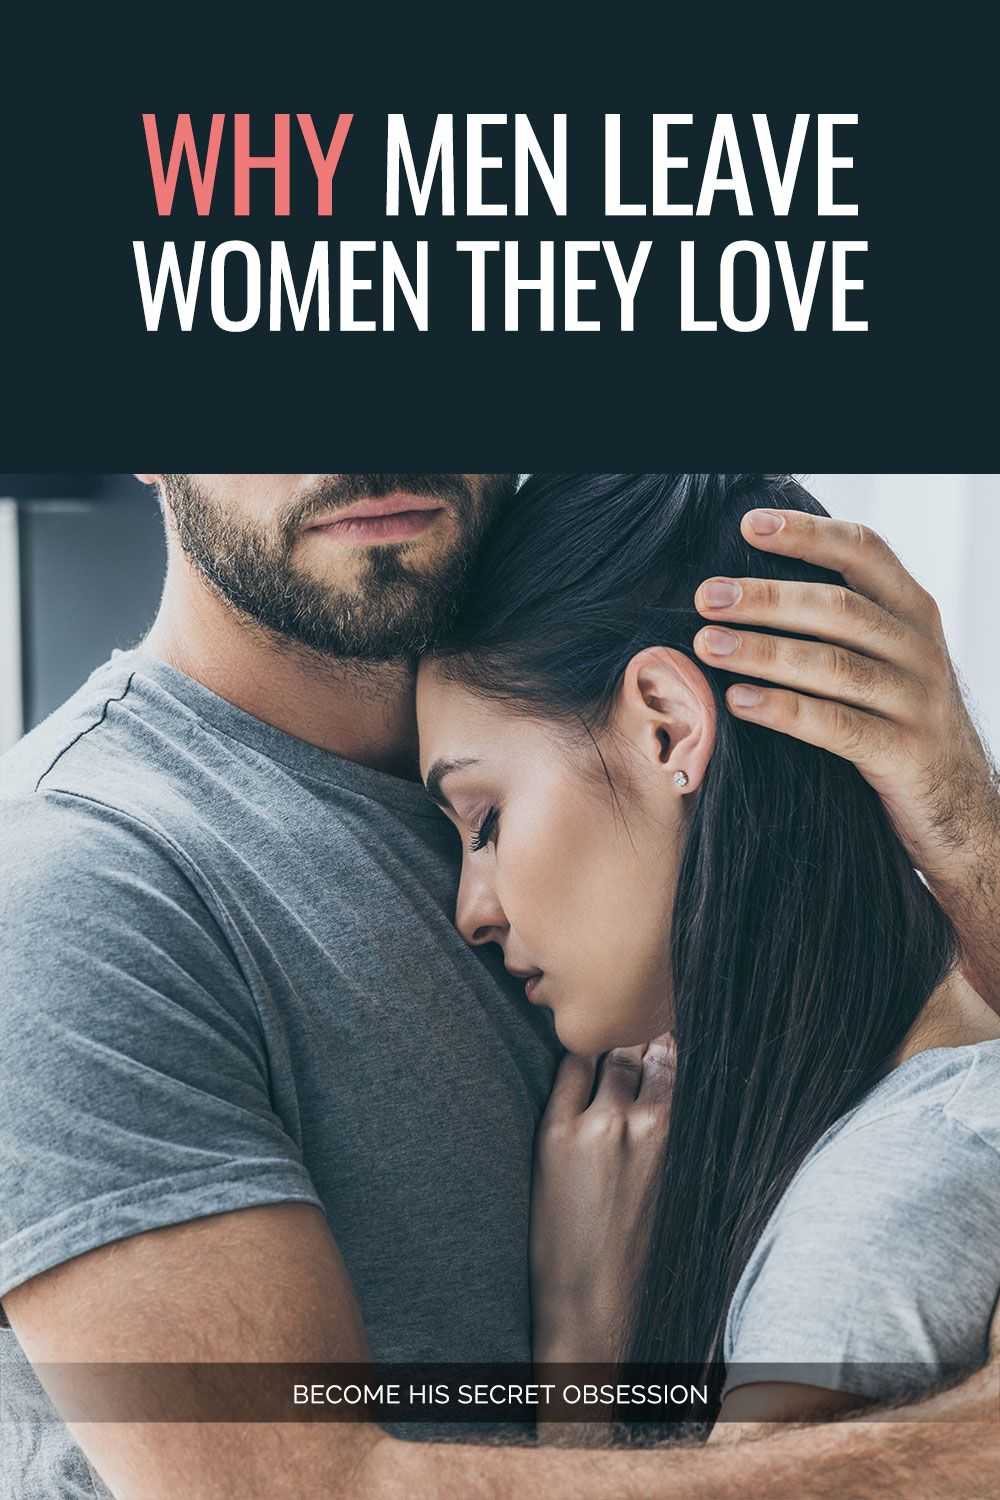 Why Men Leave Women They Love